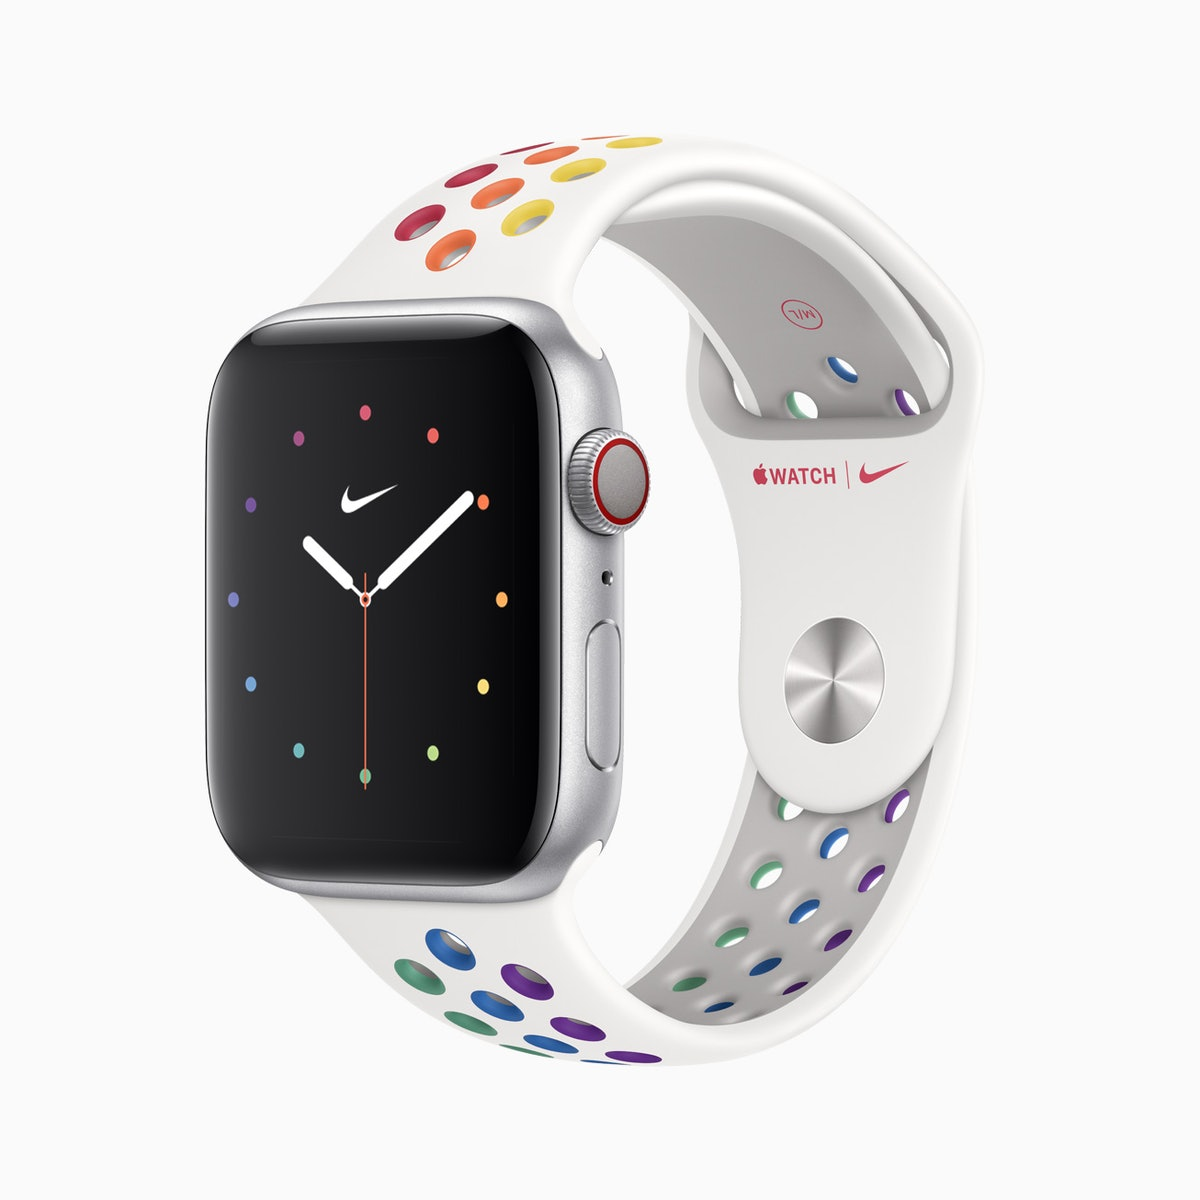 You can get the Pride 2020 Apple Watch faces on your phone or your watch.